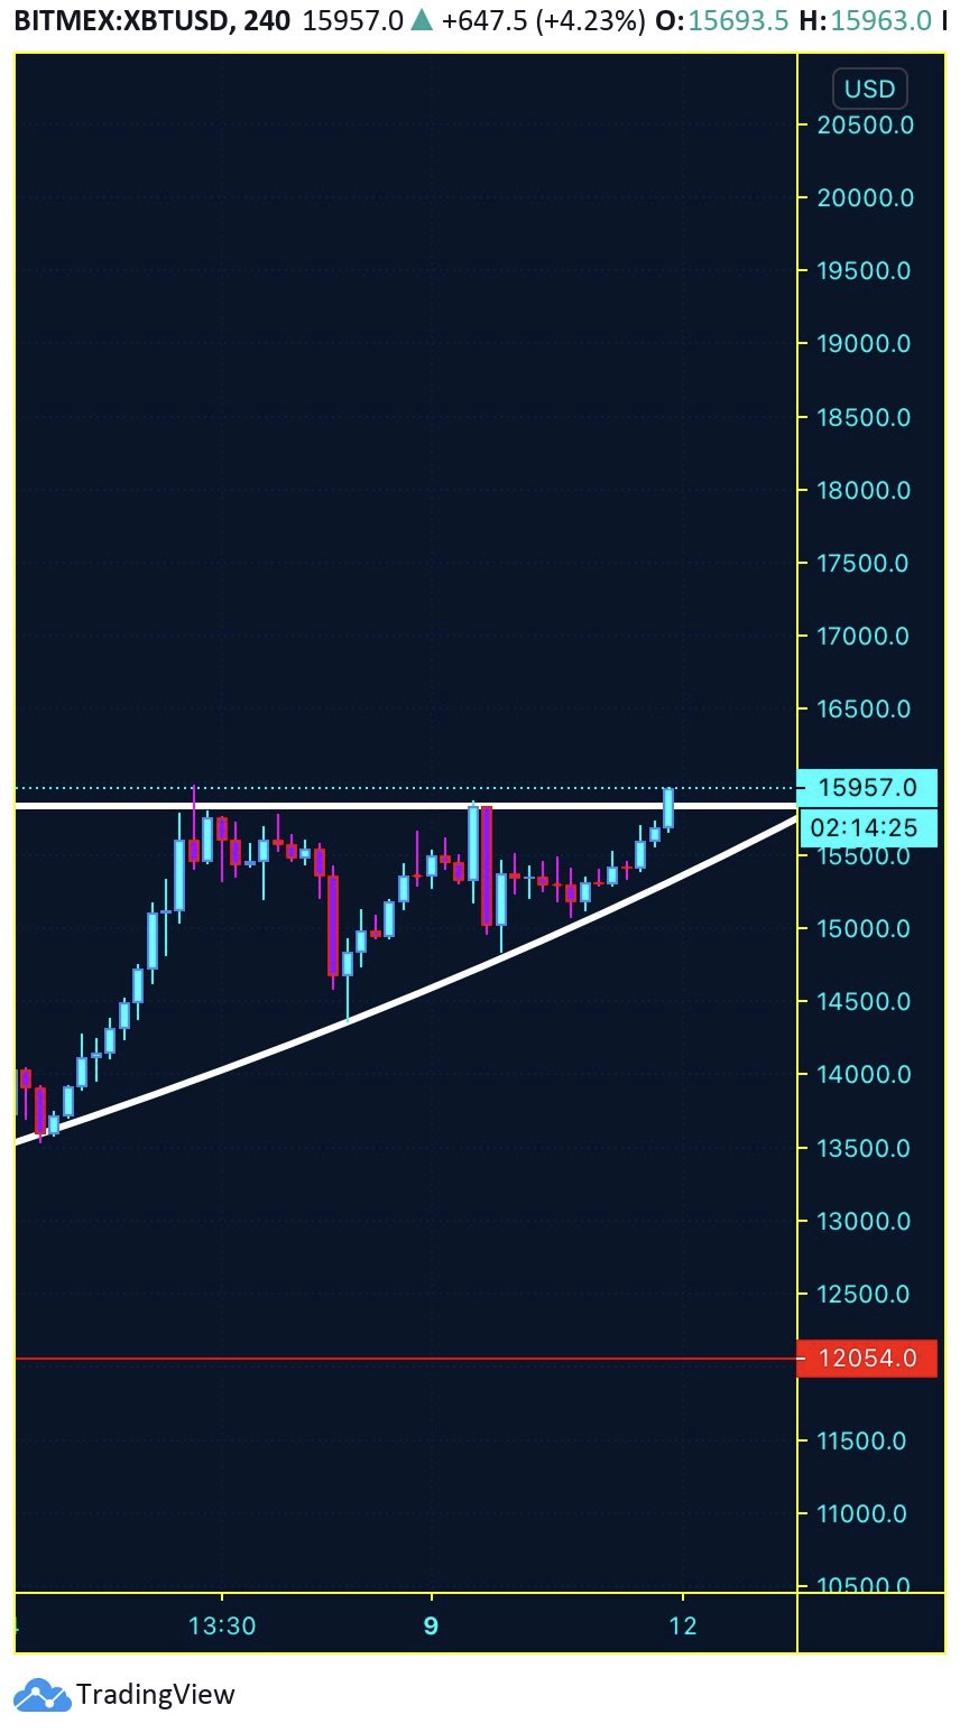 A chart containing technical analysis of bitcoin's price movements.